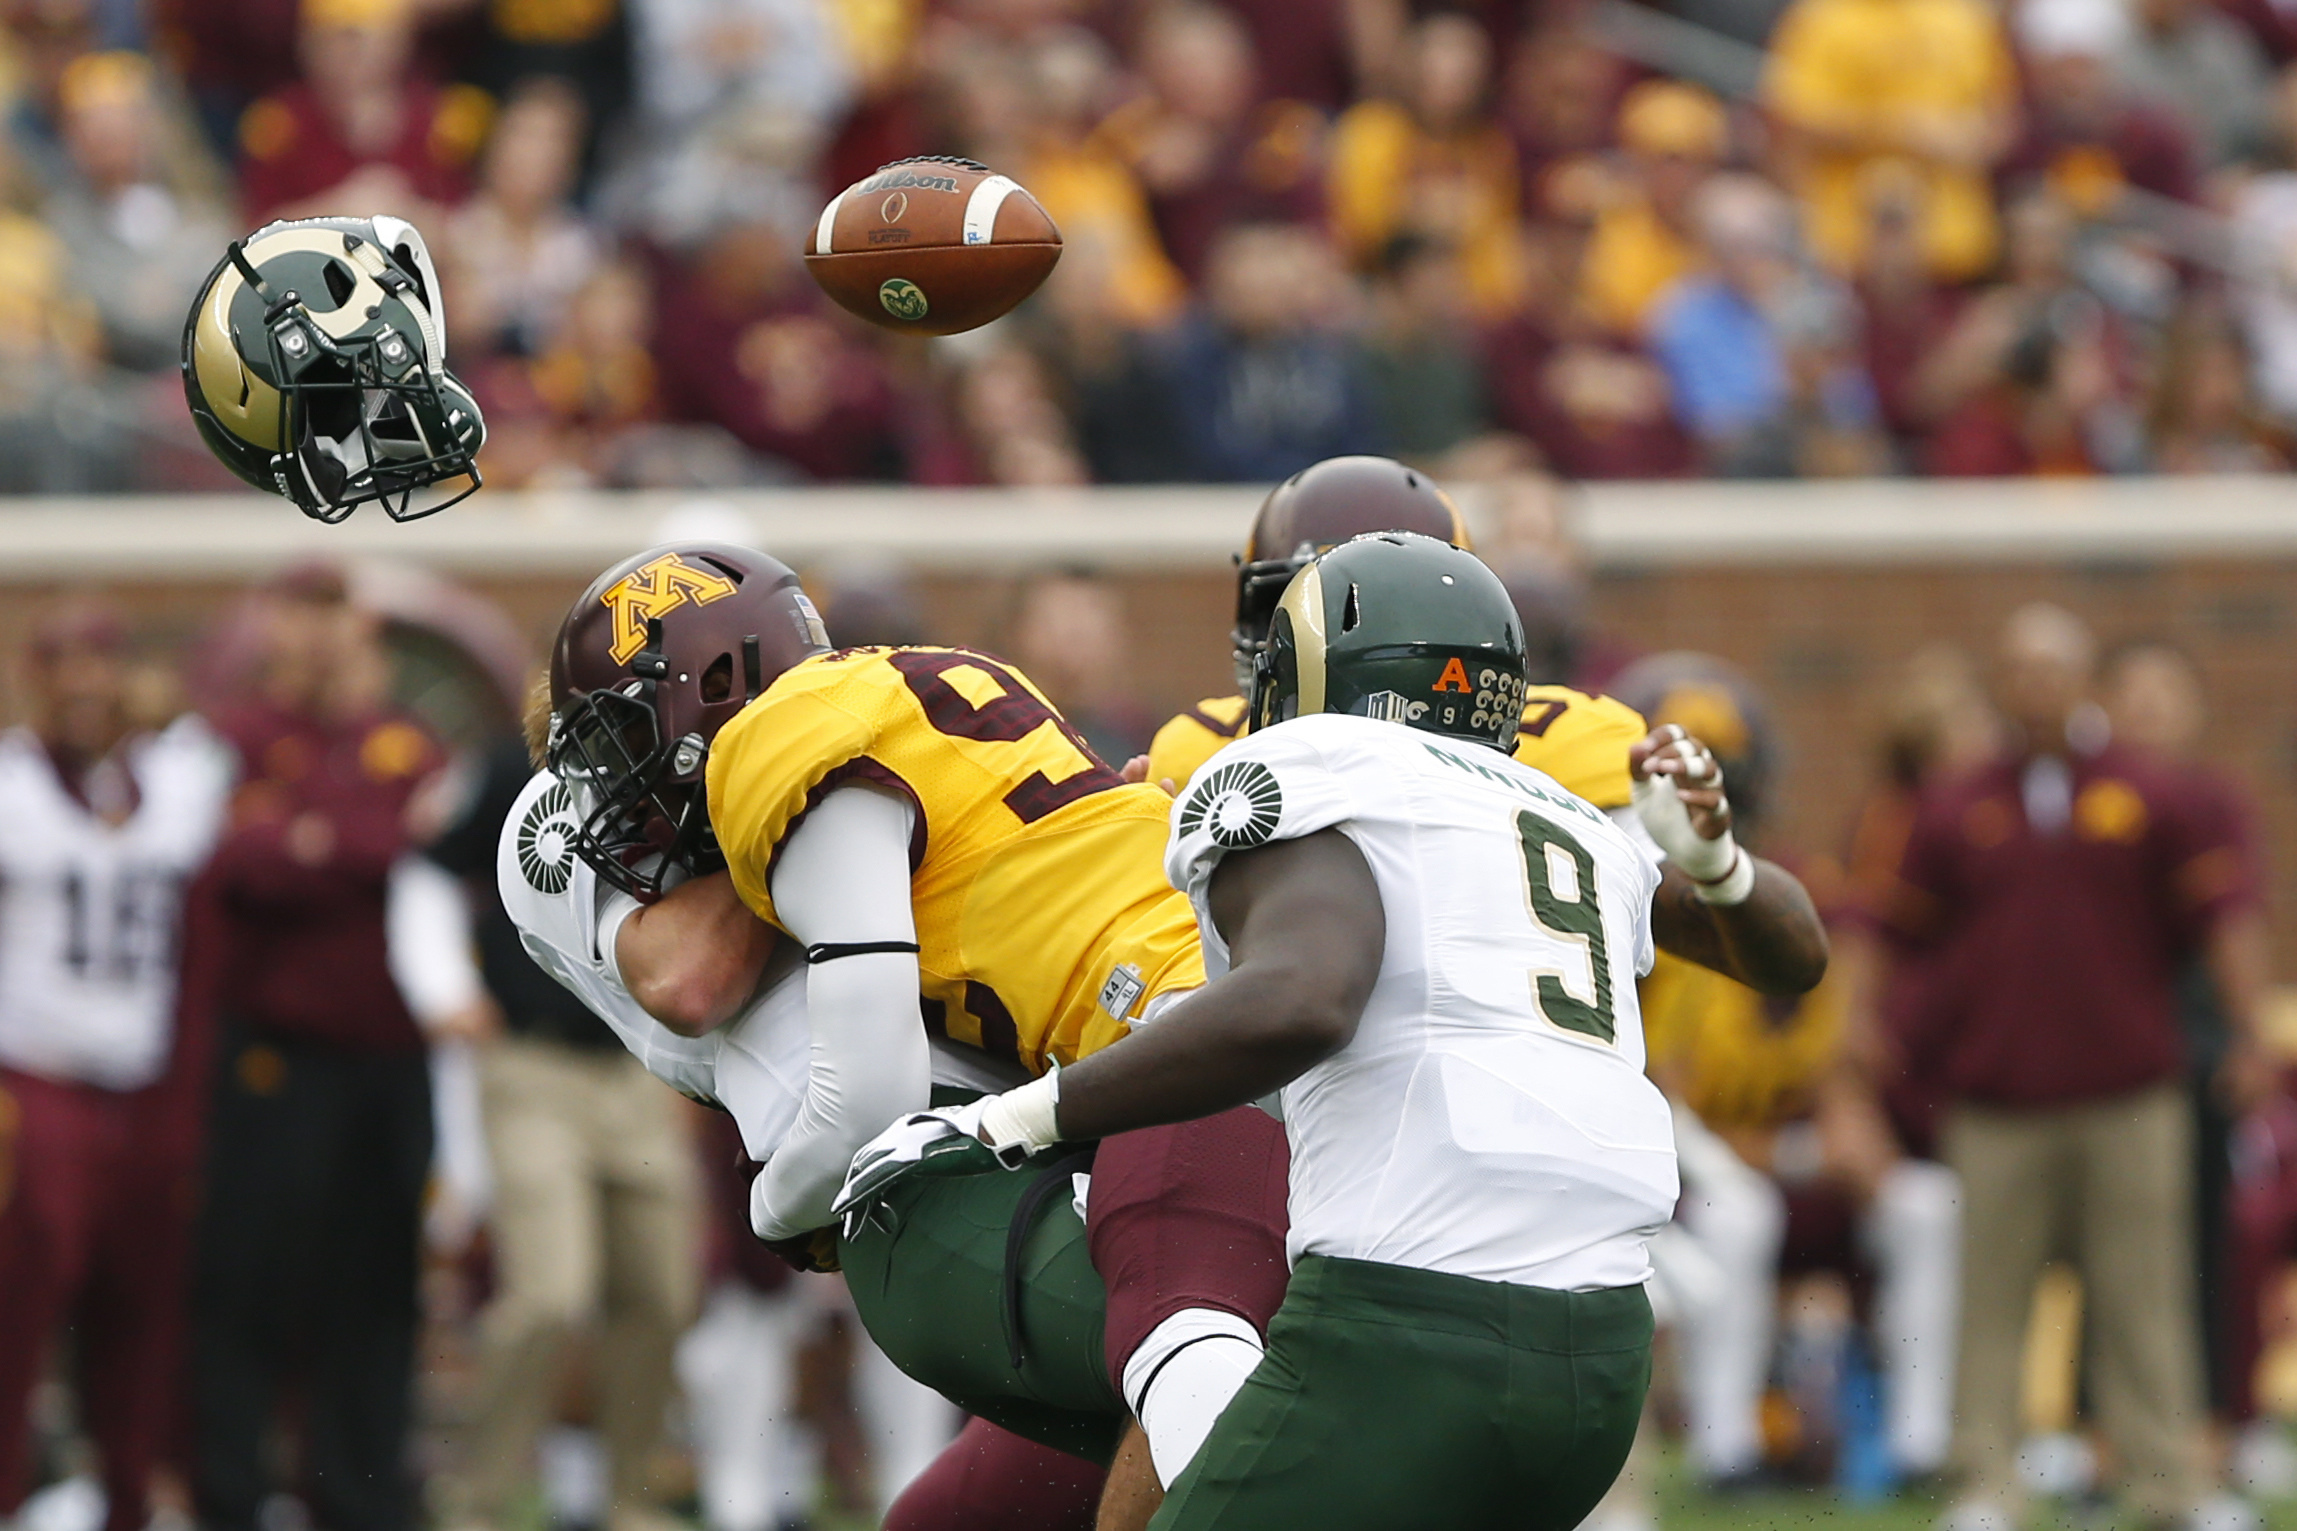 Colorado State quarterback Collin Hill loses his helmet and football after being tackled by Minnesota defensive lineman Tai'yon Devers during an NCAA college football game Saturday, Sept. 24, 2016, in Minneapolis. (AP Photo/Stacy Bengs)